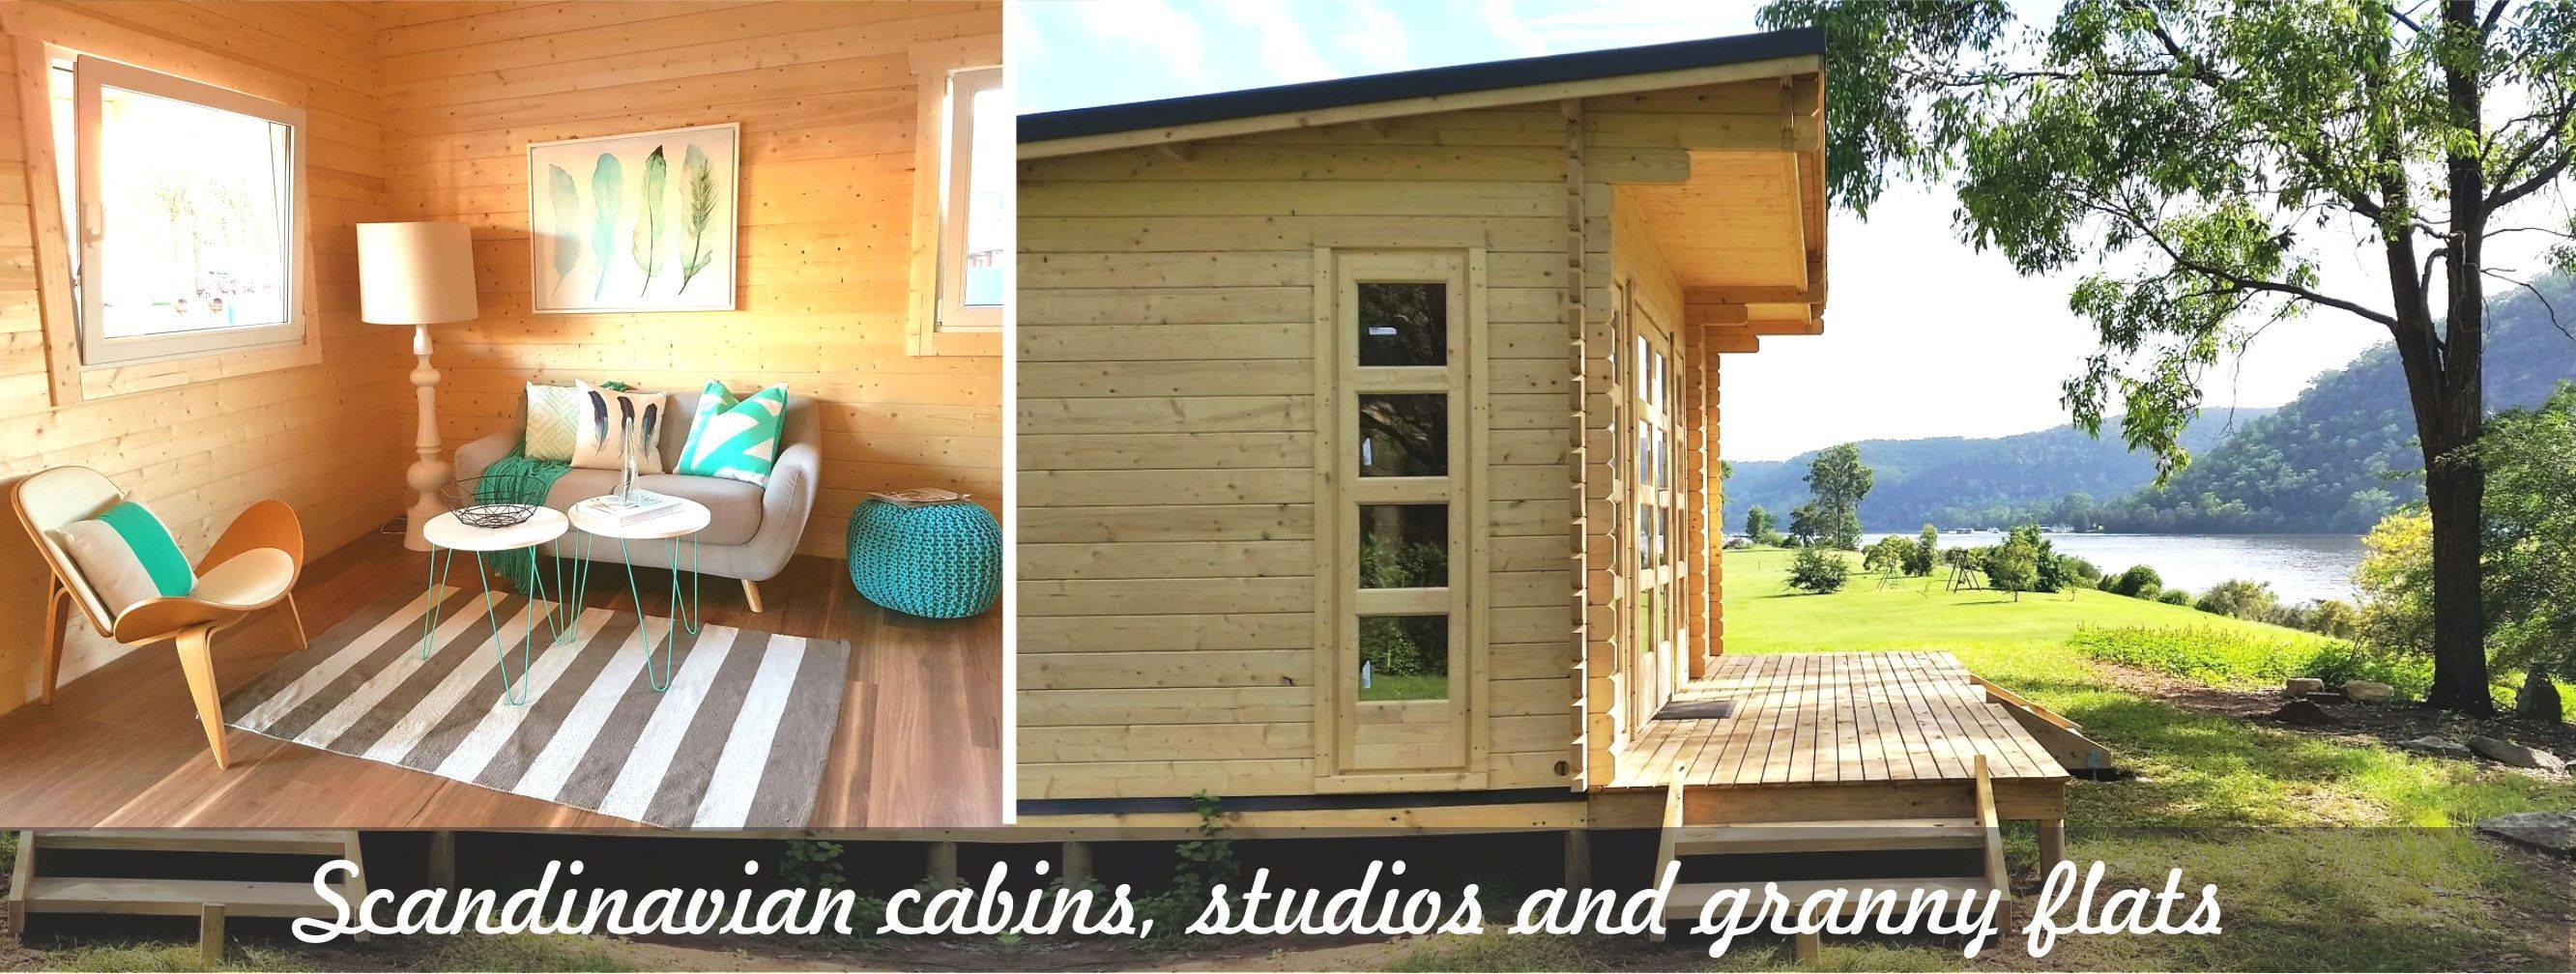 Yzy kit homes yzy backyard cabins and granny flats for Backyard cabins granny flats